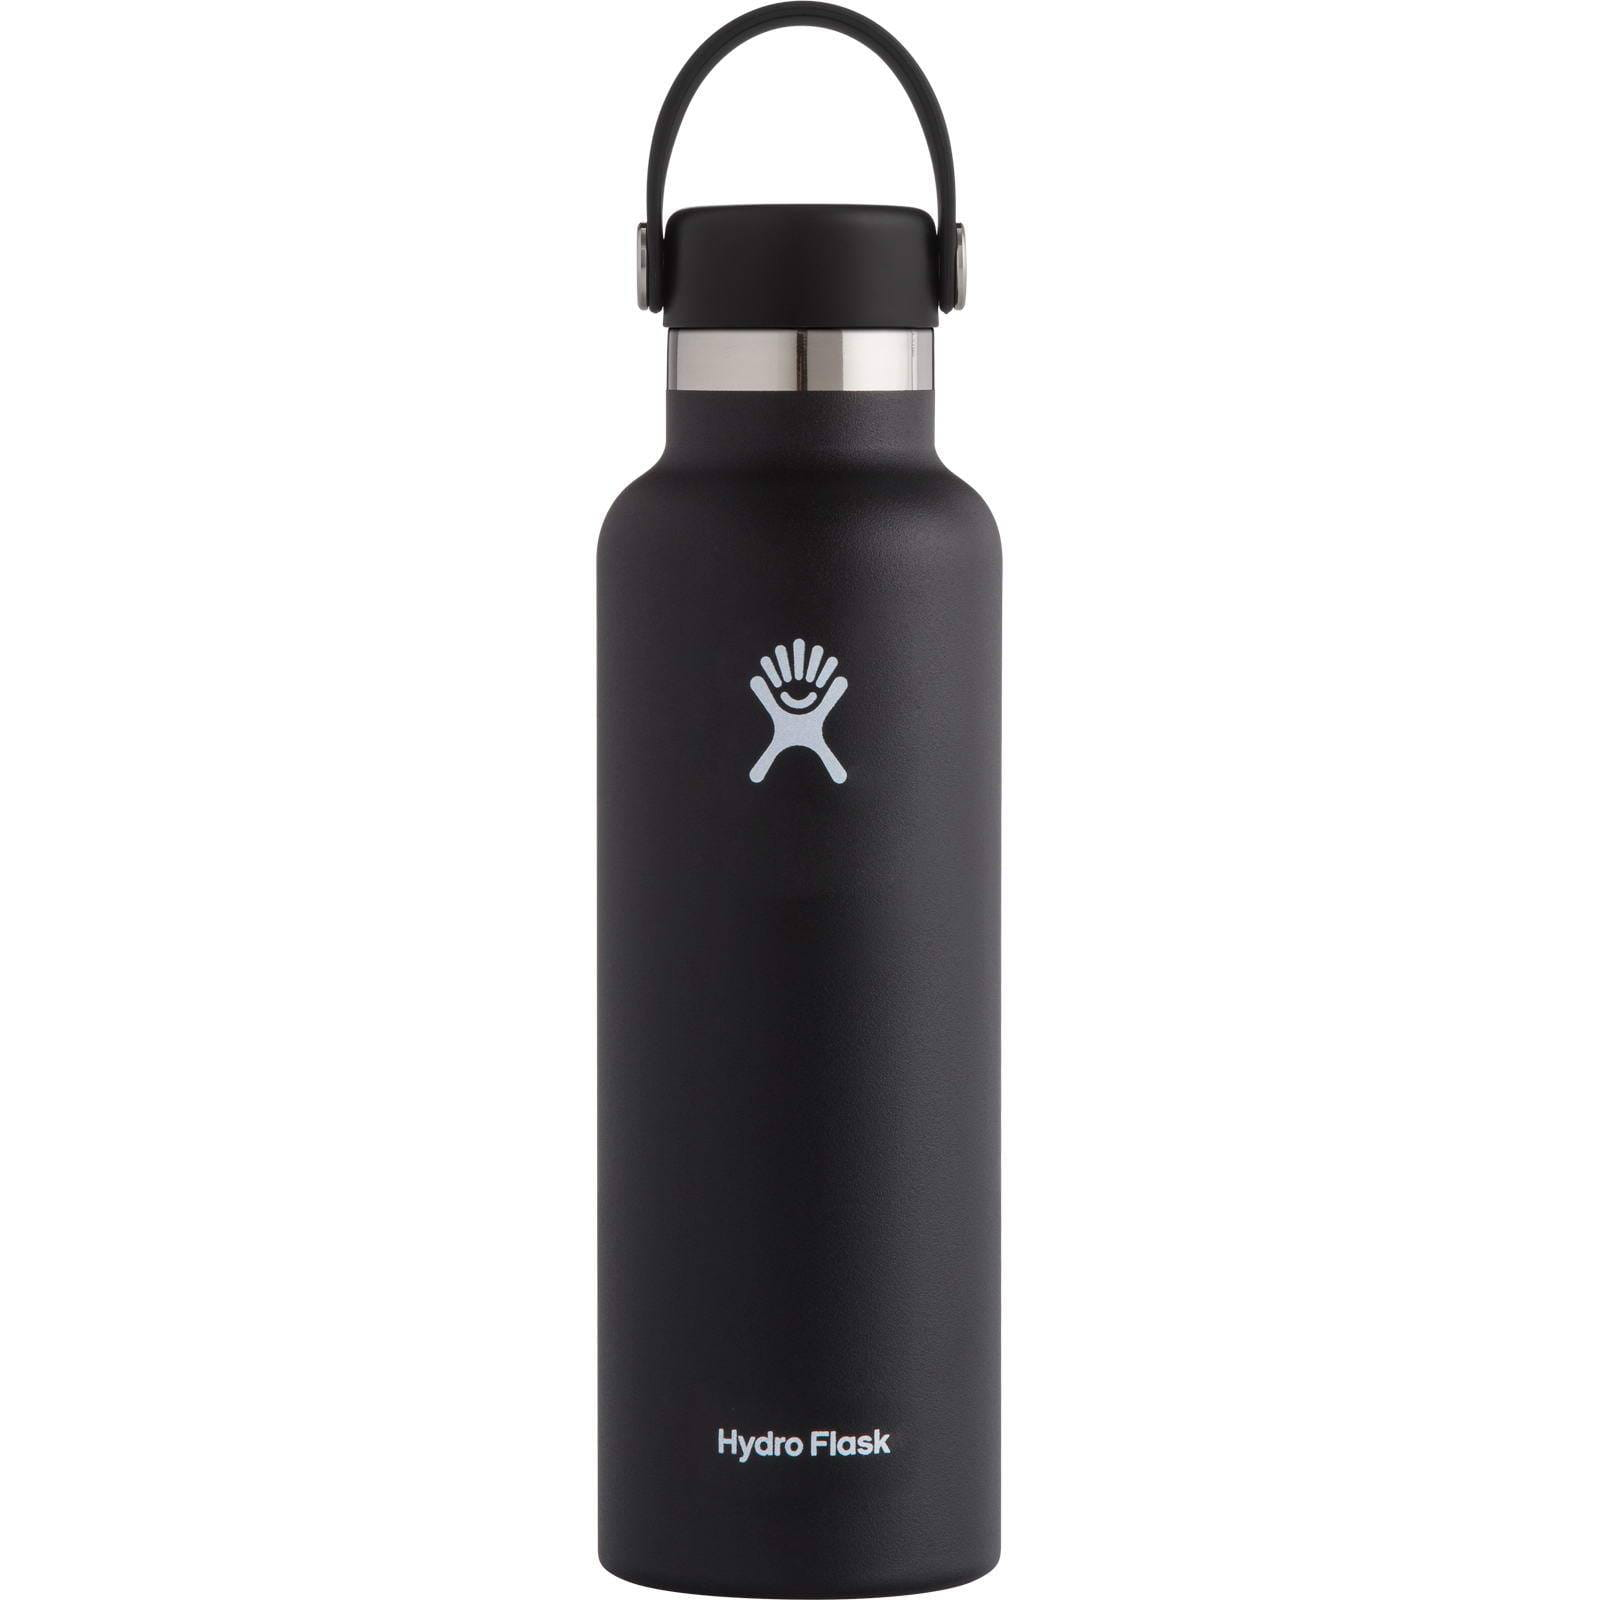 Hydro Flask 21 oz Standard Mouth - Thermoflasche black - Bild 1